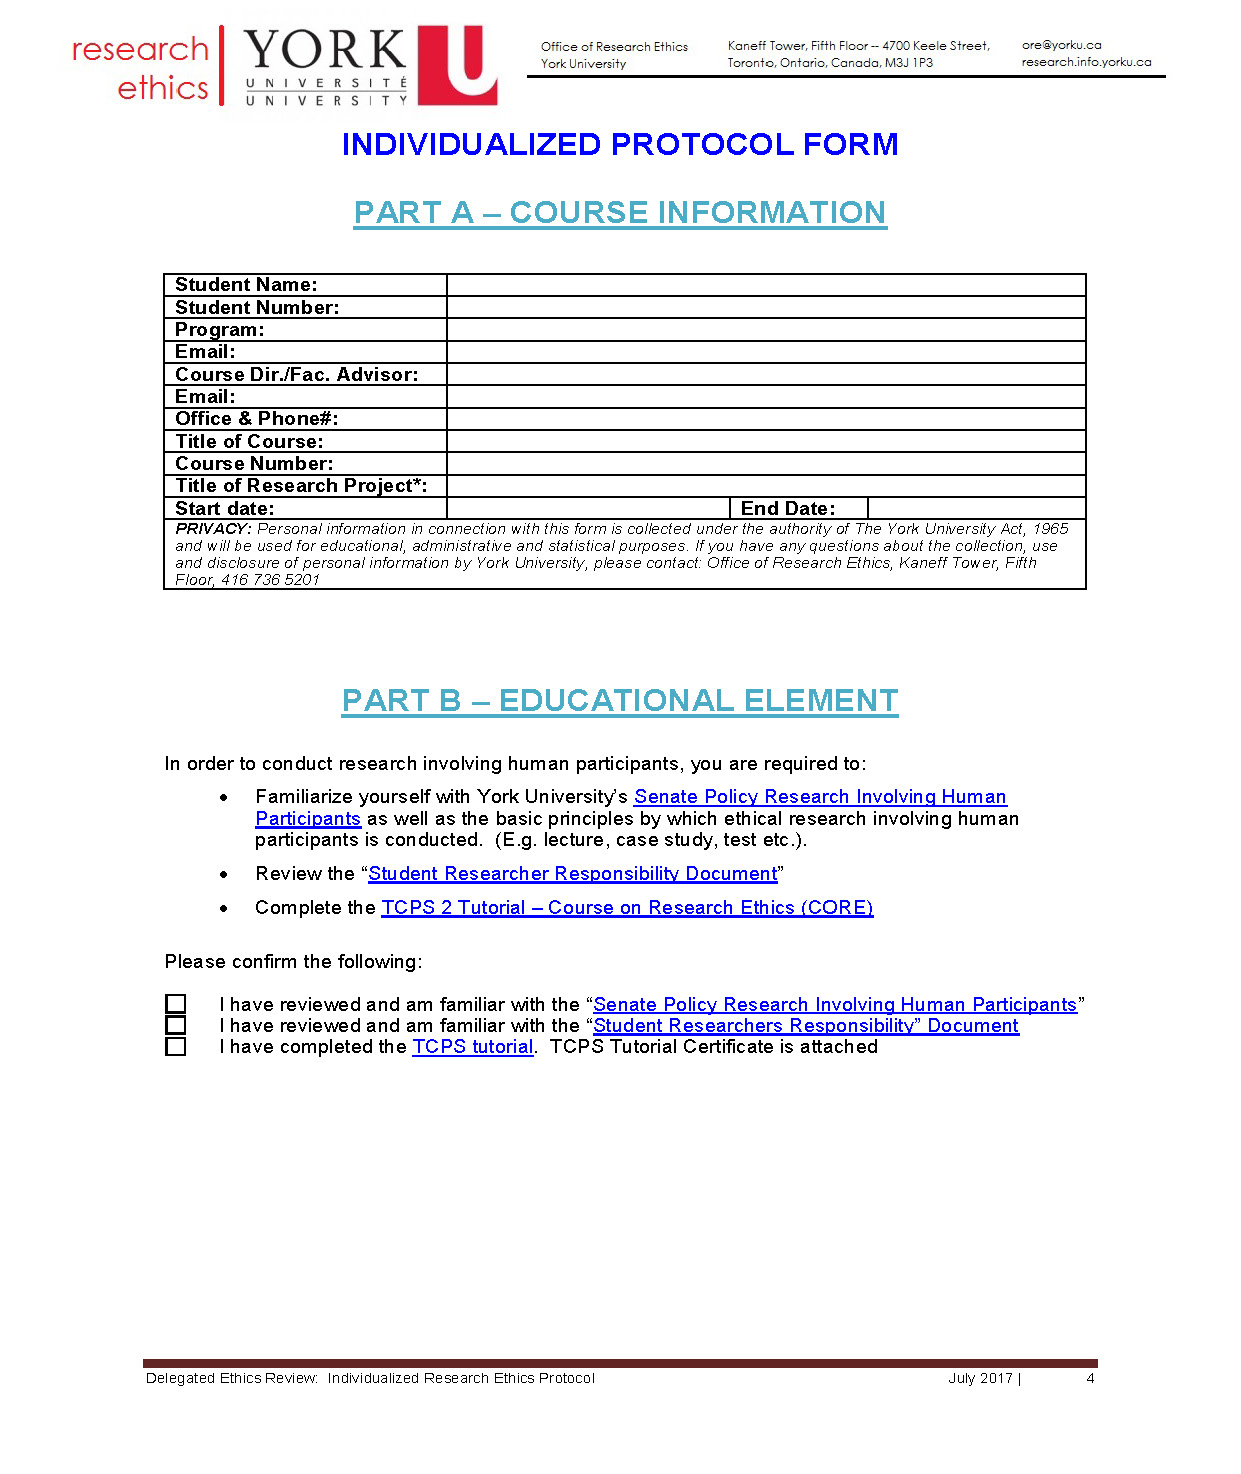 full-size image of the individualized protocol from research ethics page 4